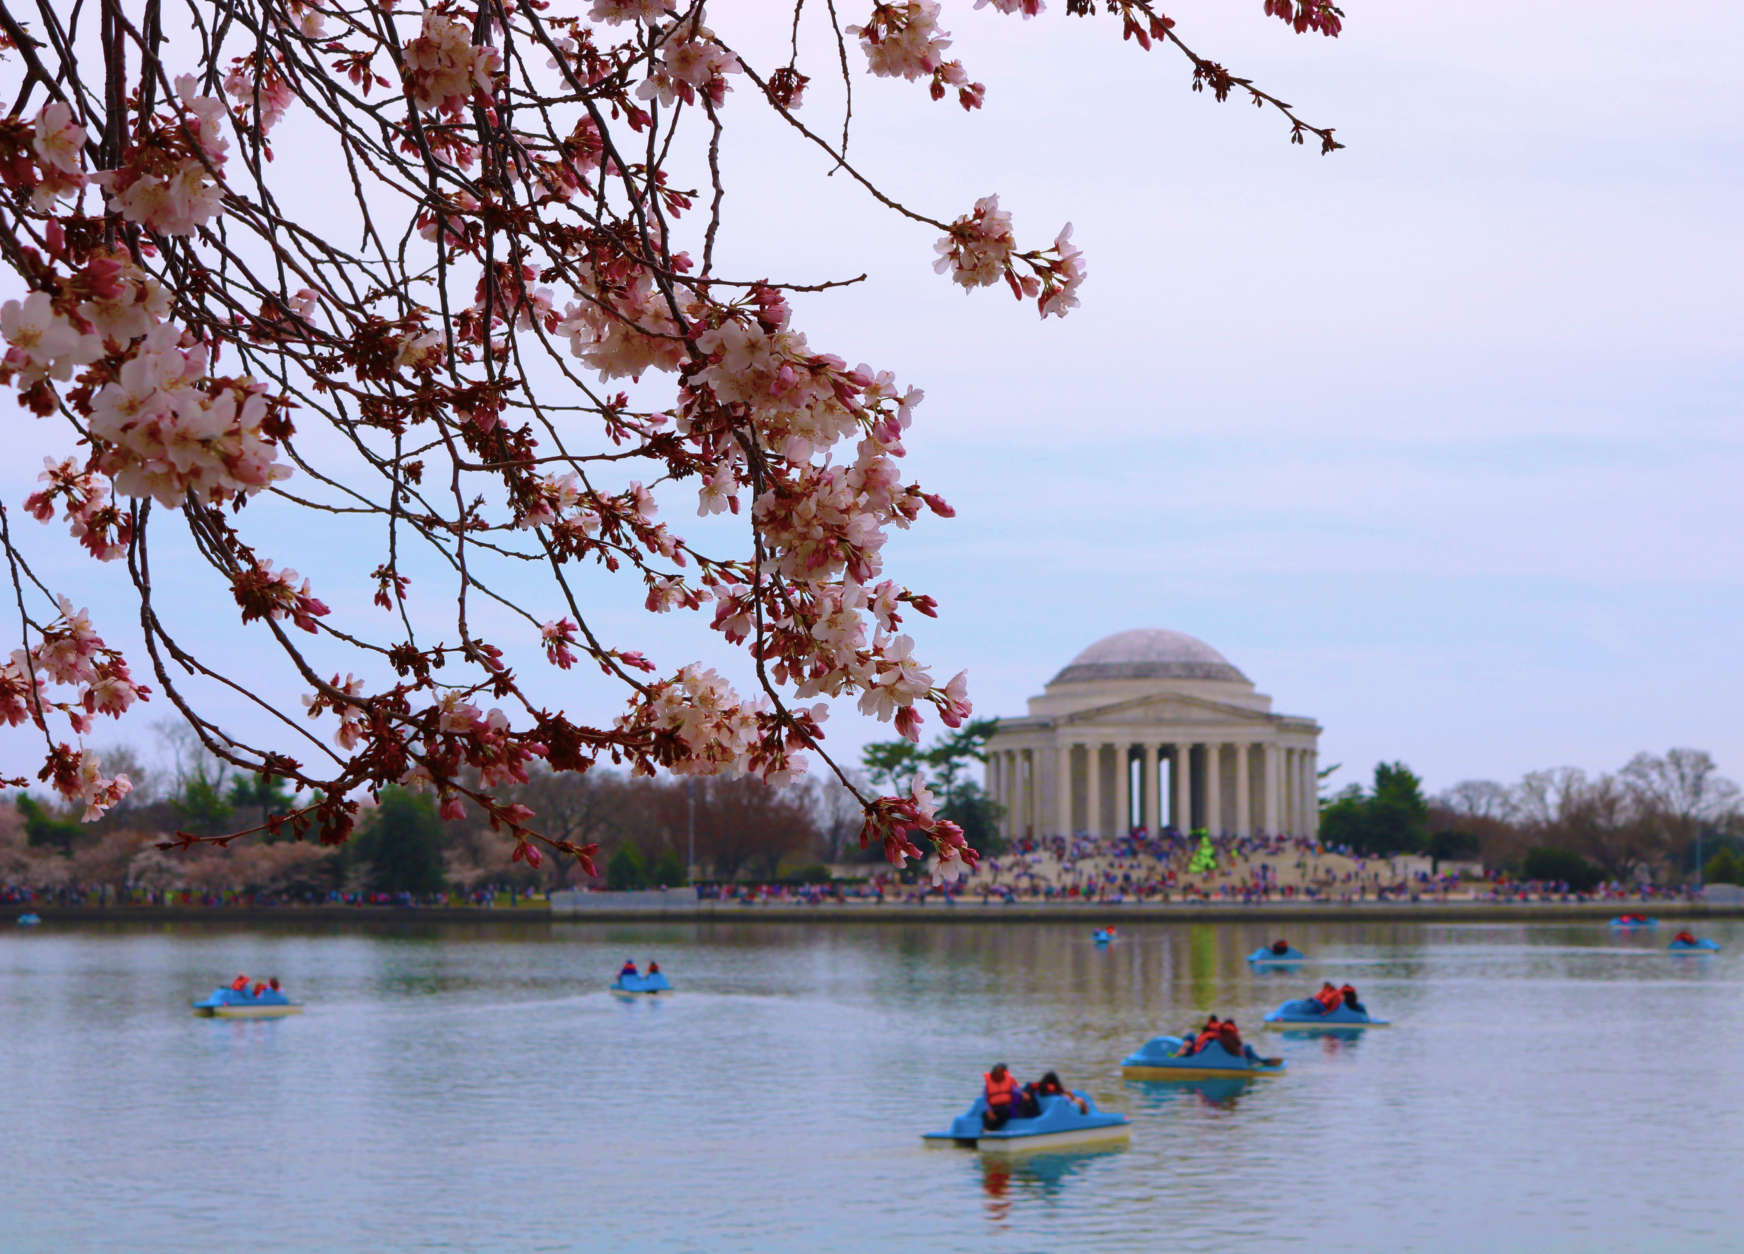 A photo overlooking the Tidal Basin, one of the best spots to catch the cherry blossoms at their peak, captures the cherry blossoms framing the Jefferson Memorial. (WTOP/Hanna Choi)